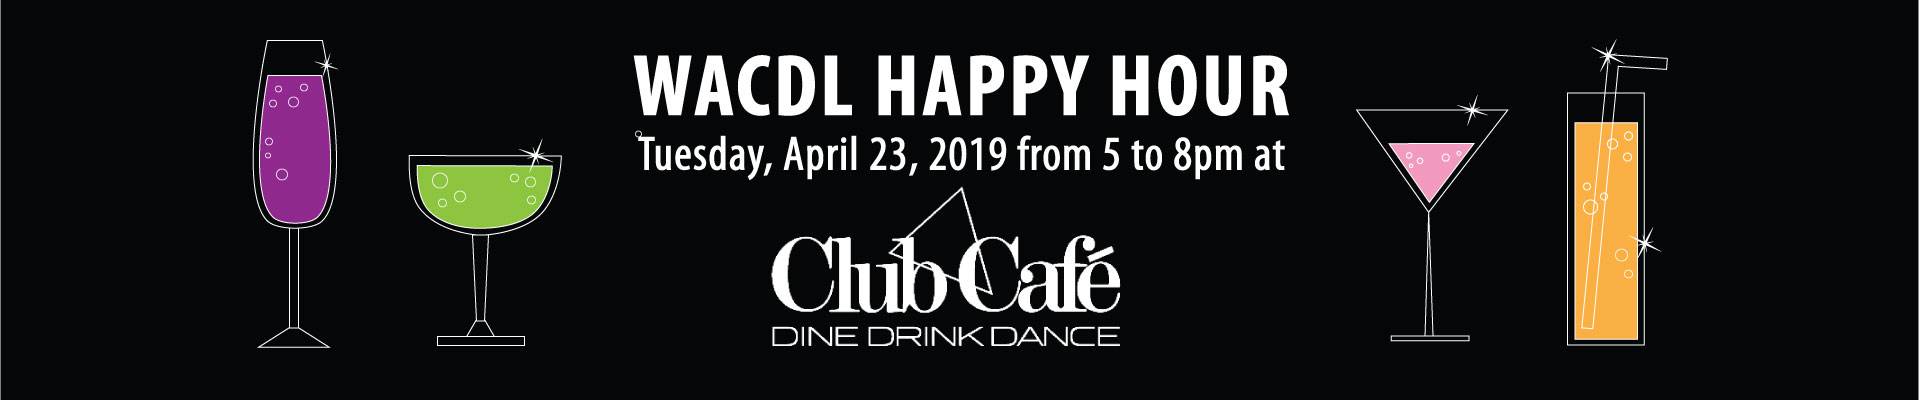 WACDL Happy Hour